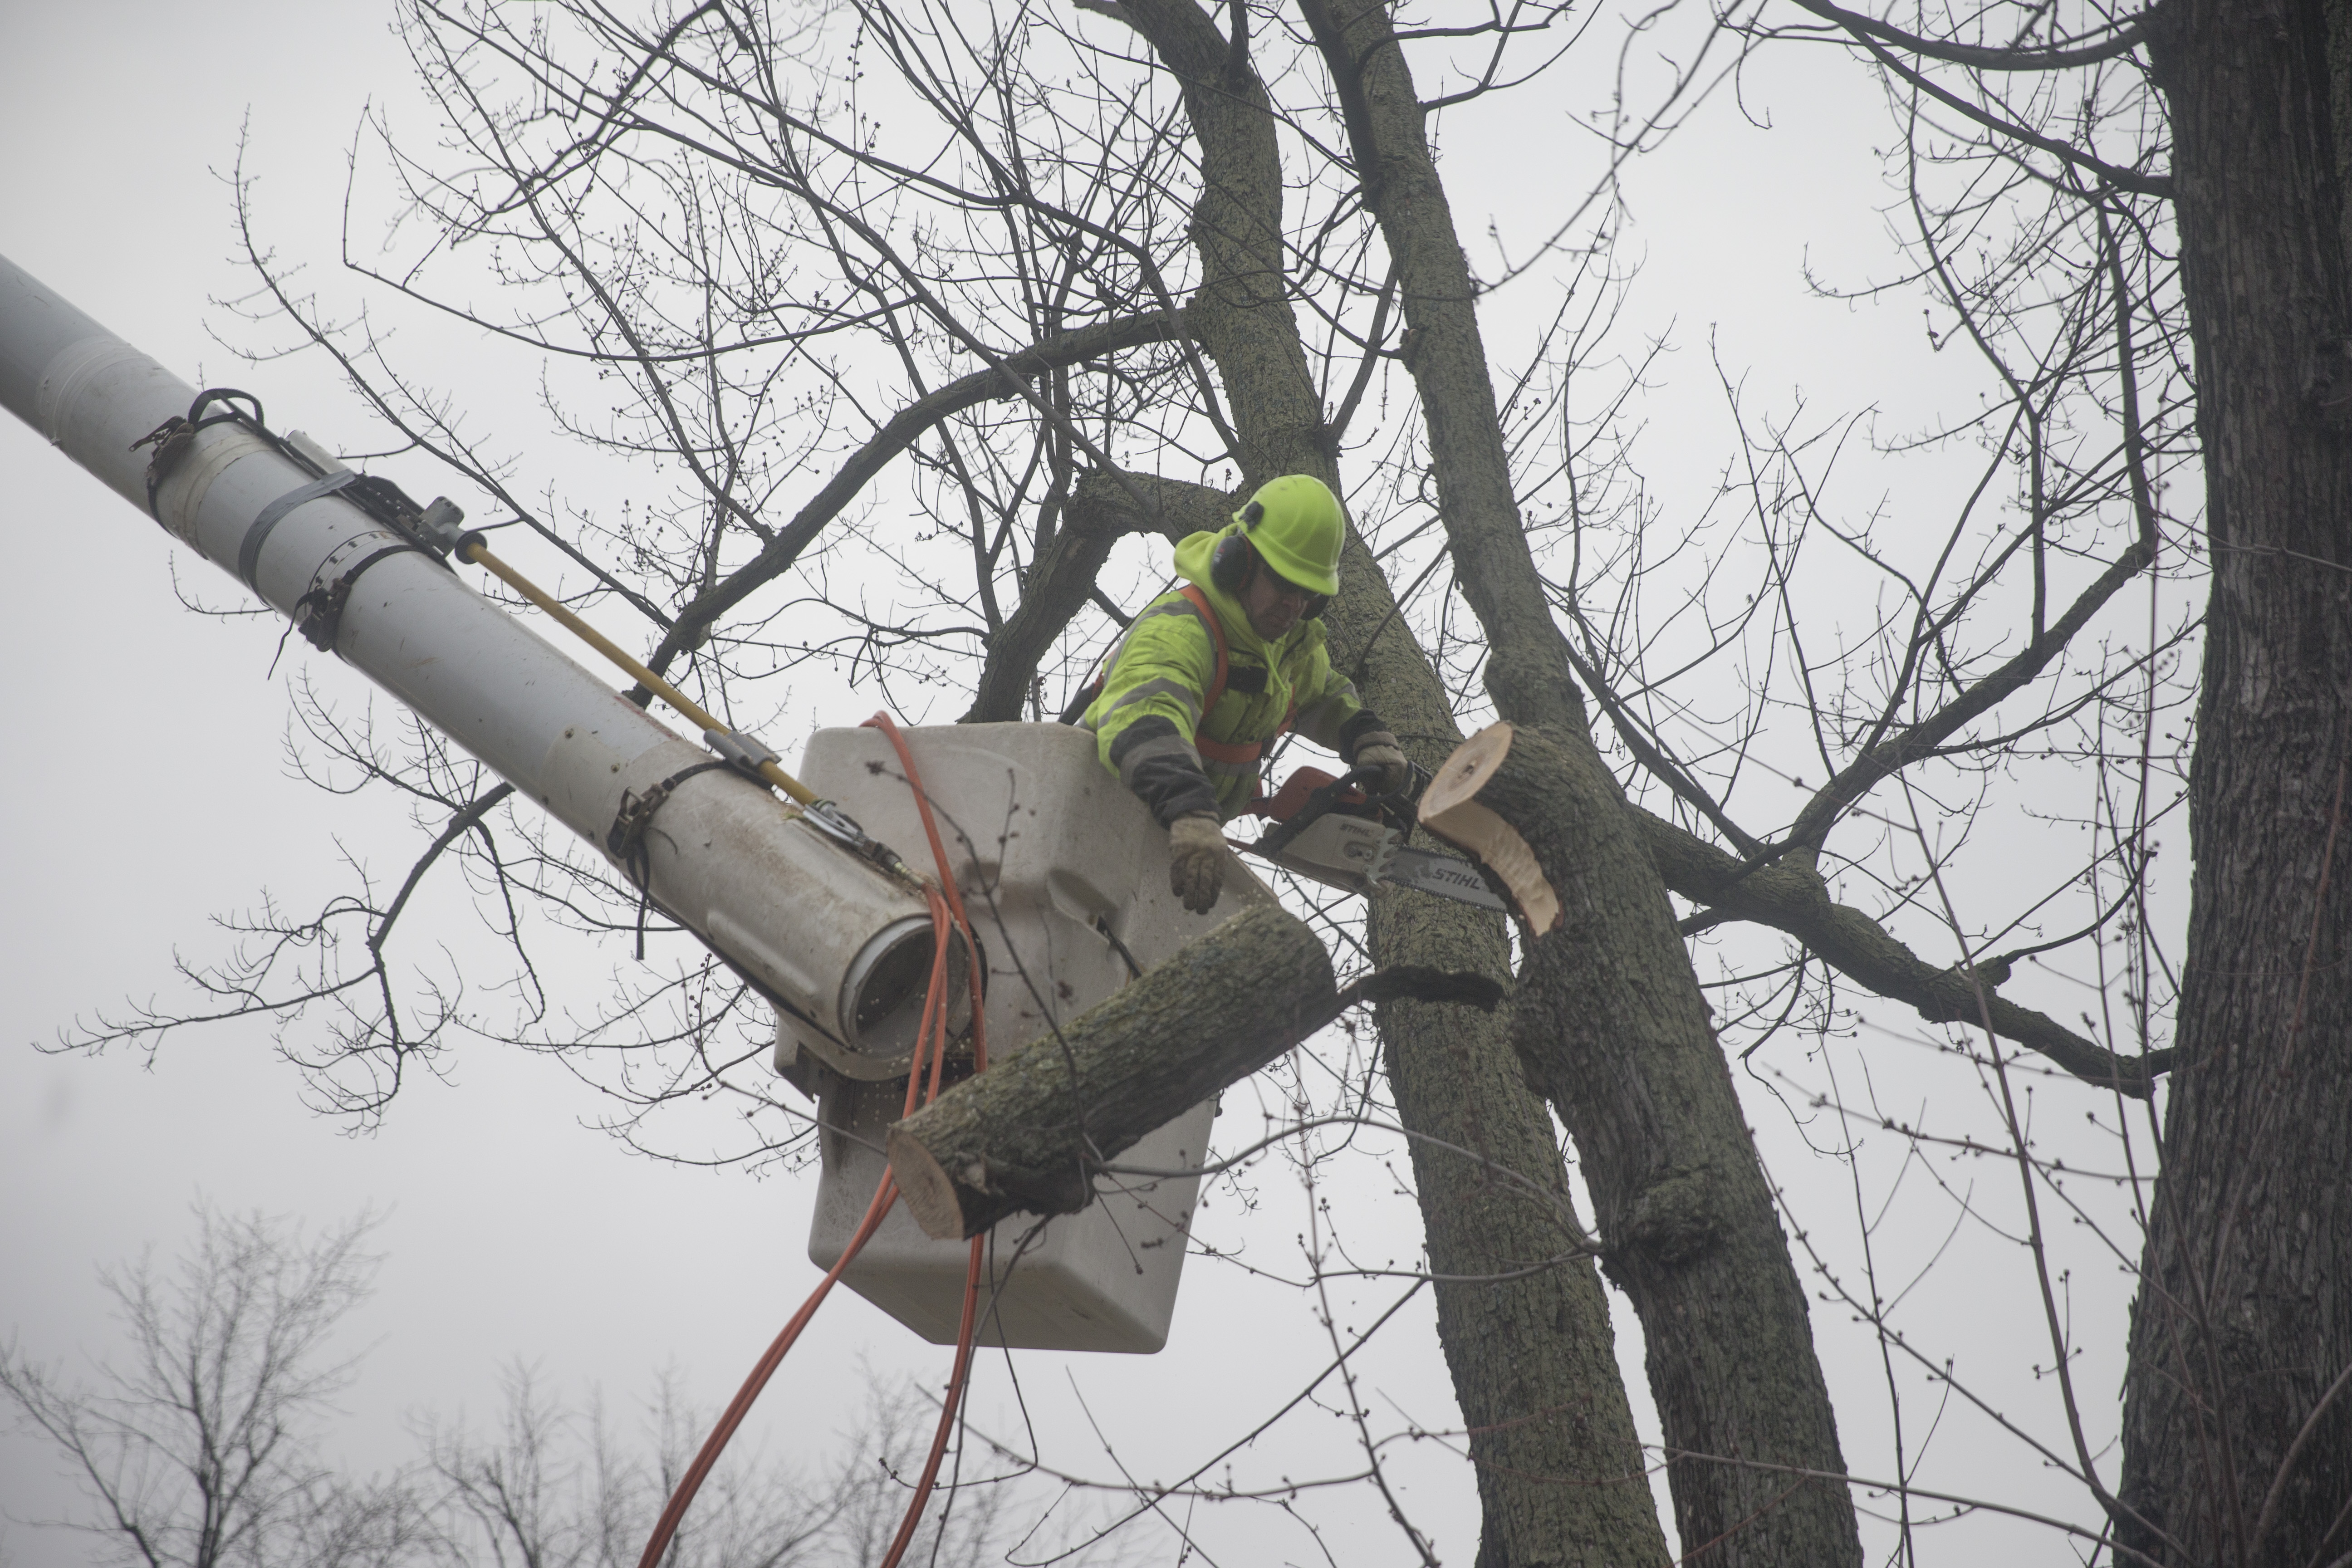 Town of Tonawanda Forestry Division worker Jason Orlando trims a large silver maple tree on Dorset Drive in the town on  Wednesday,  Jan. 25, 2017. (John Hickey/Buffalo News)